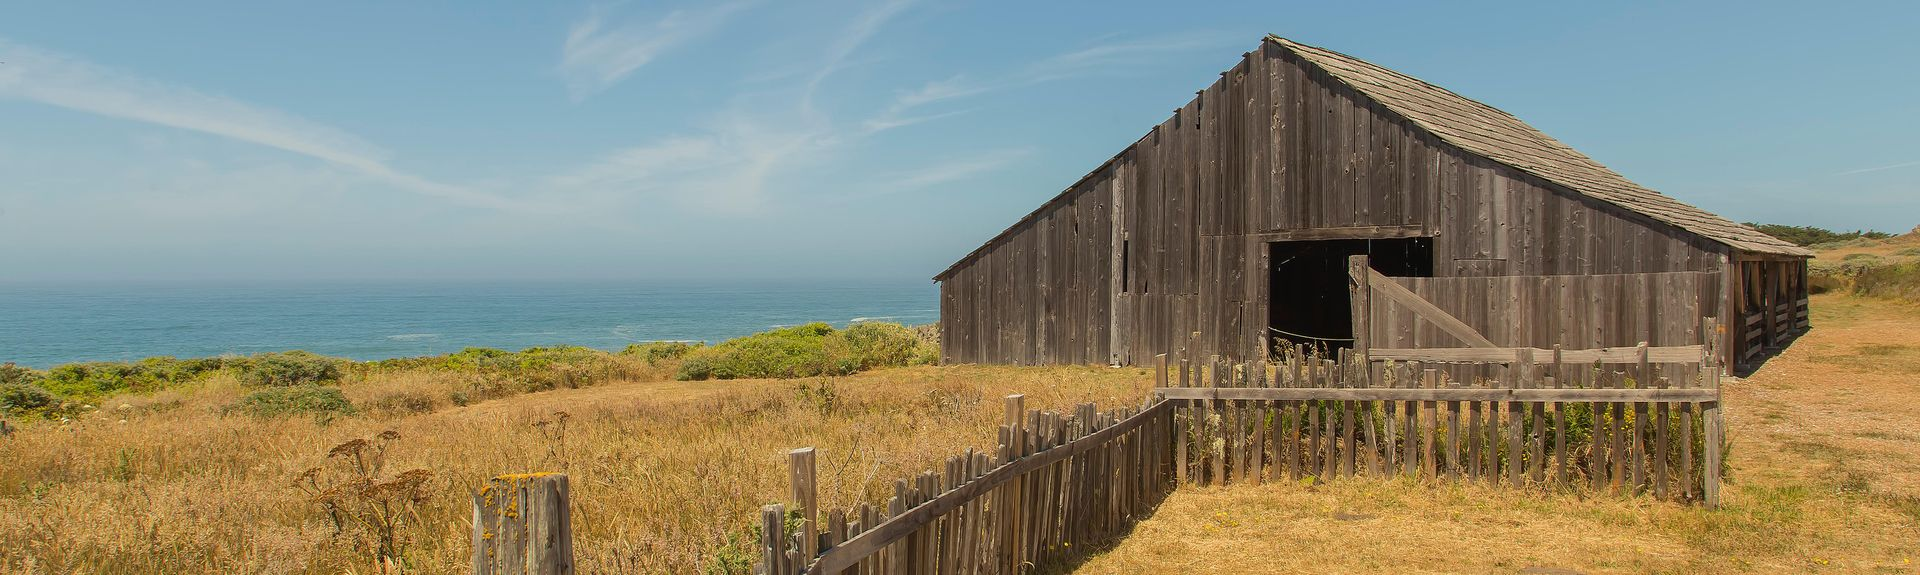 Sea Ranch, Califórnia, Estados Unidos